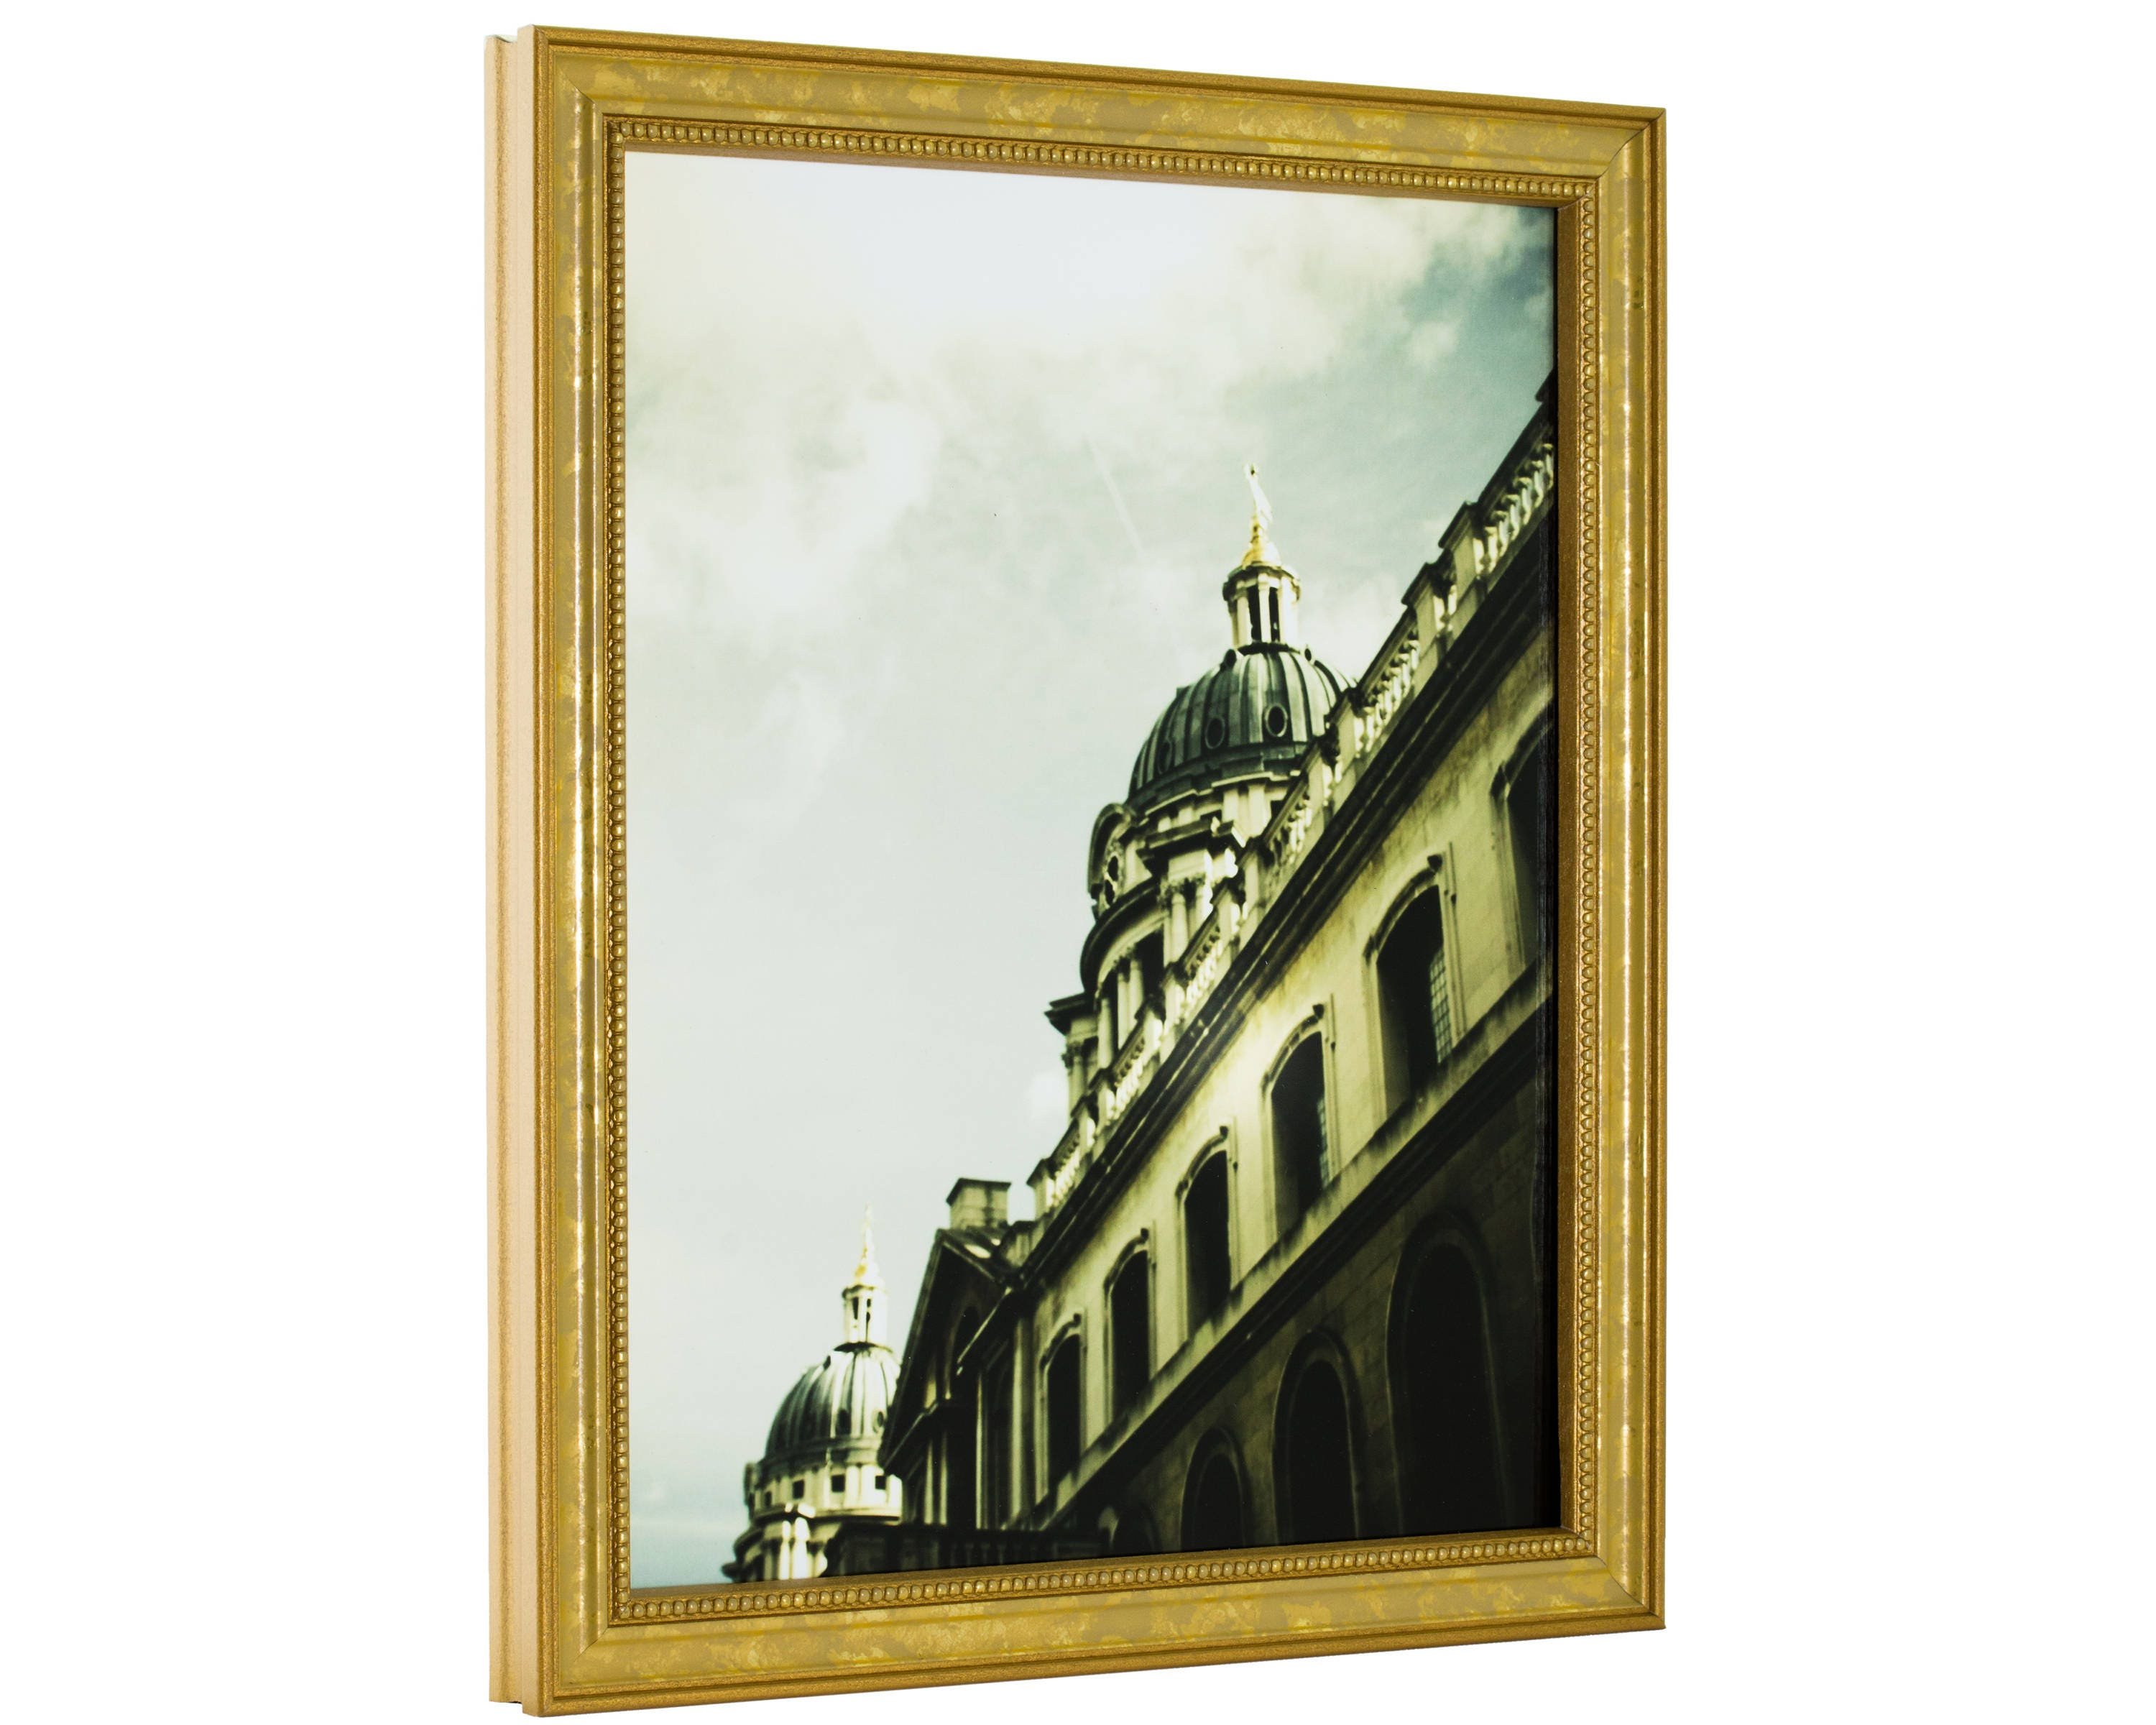 Craig Frames, 20x30 Inch, Aged Gold Picture Frame, Stratton .75 ...